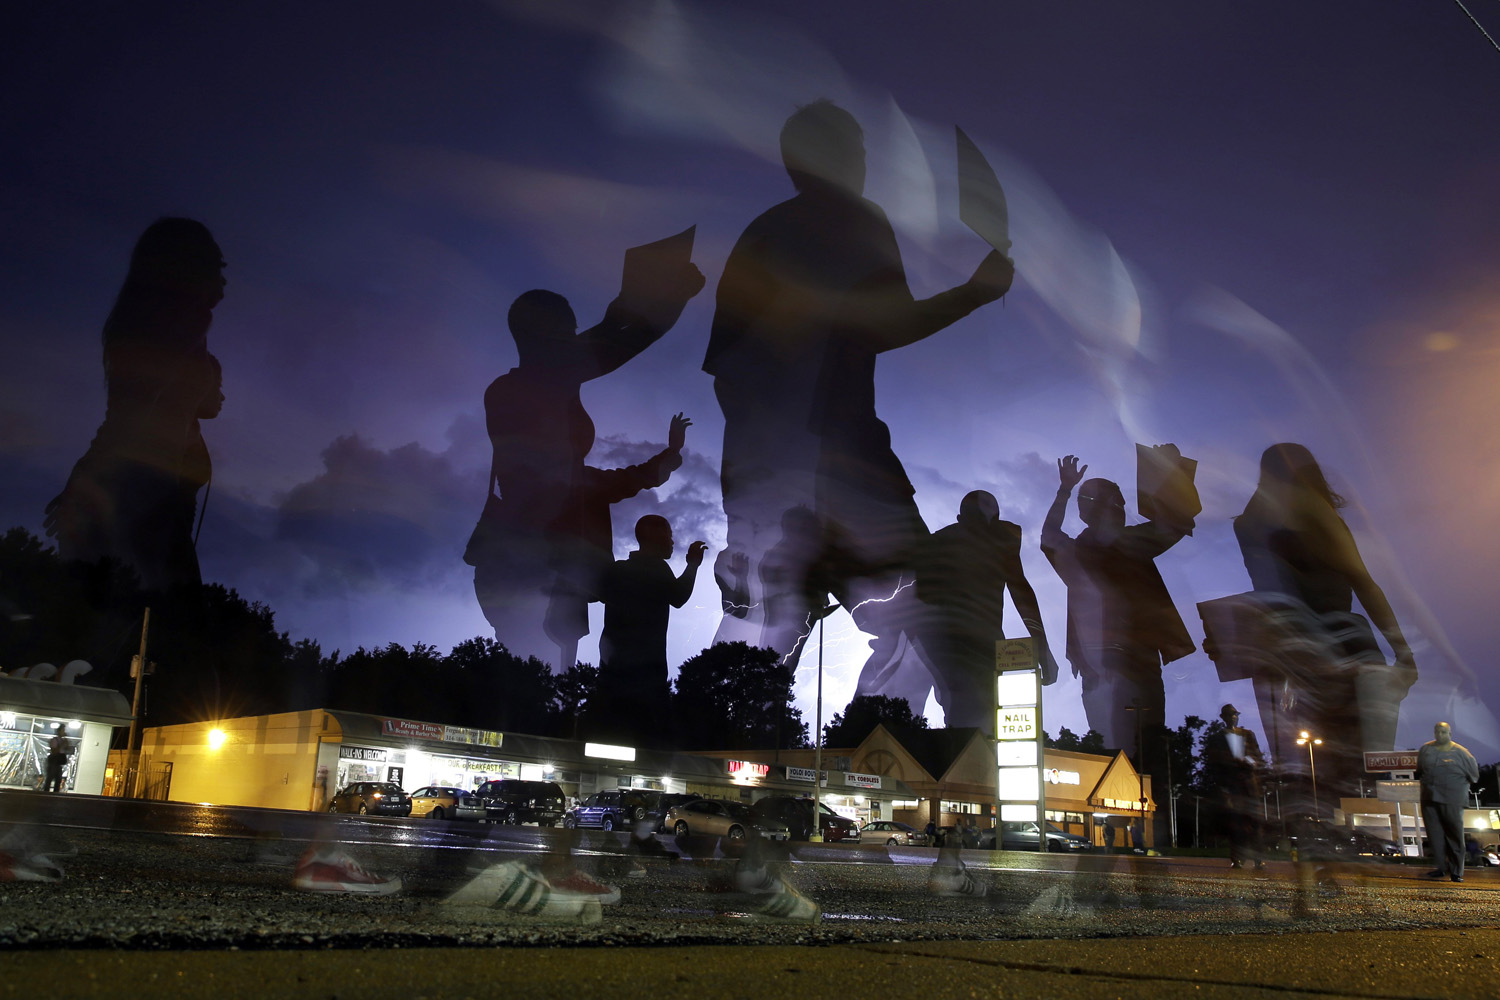 Aug. 20, 2014. In this photo taken with a long exposure, protesters march in the street as lightning flashes in the distance in Ferguson, Mo.